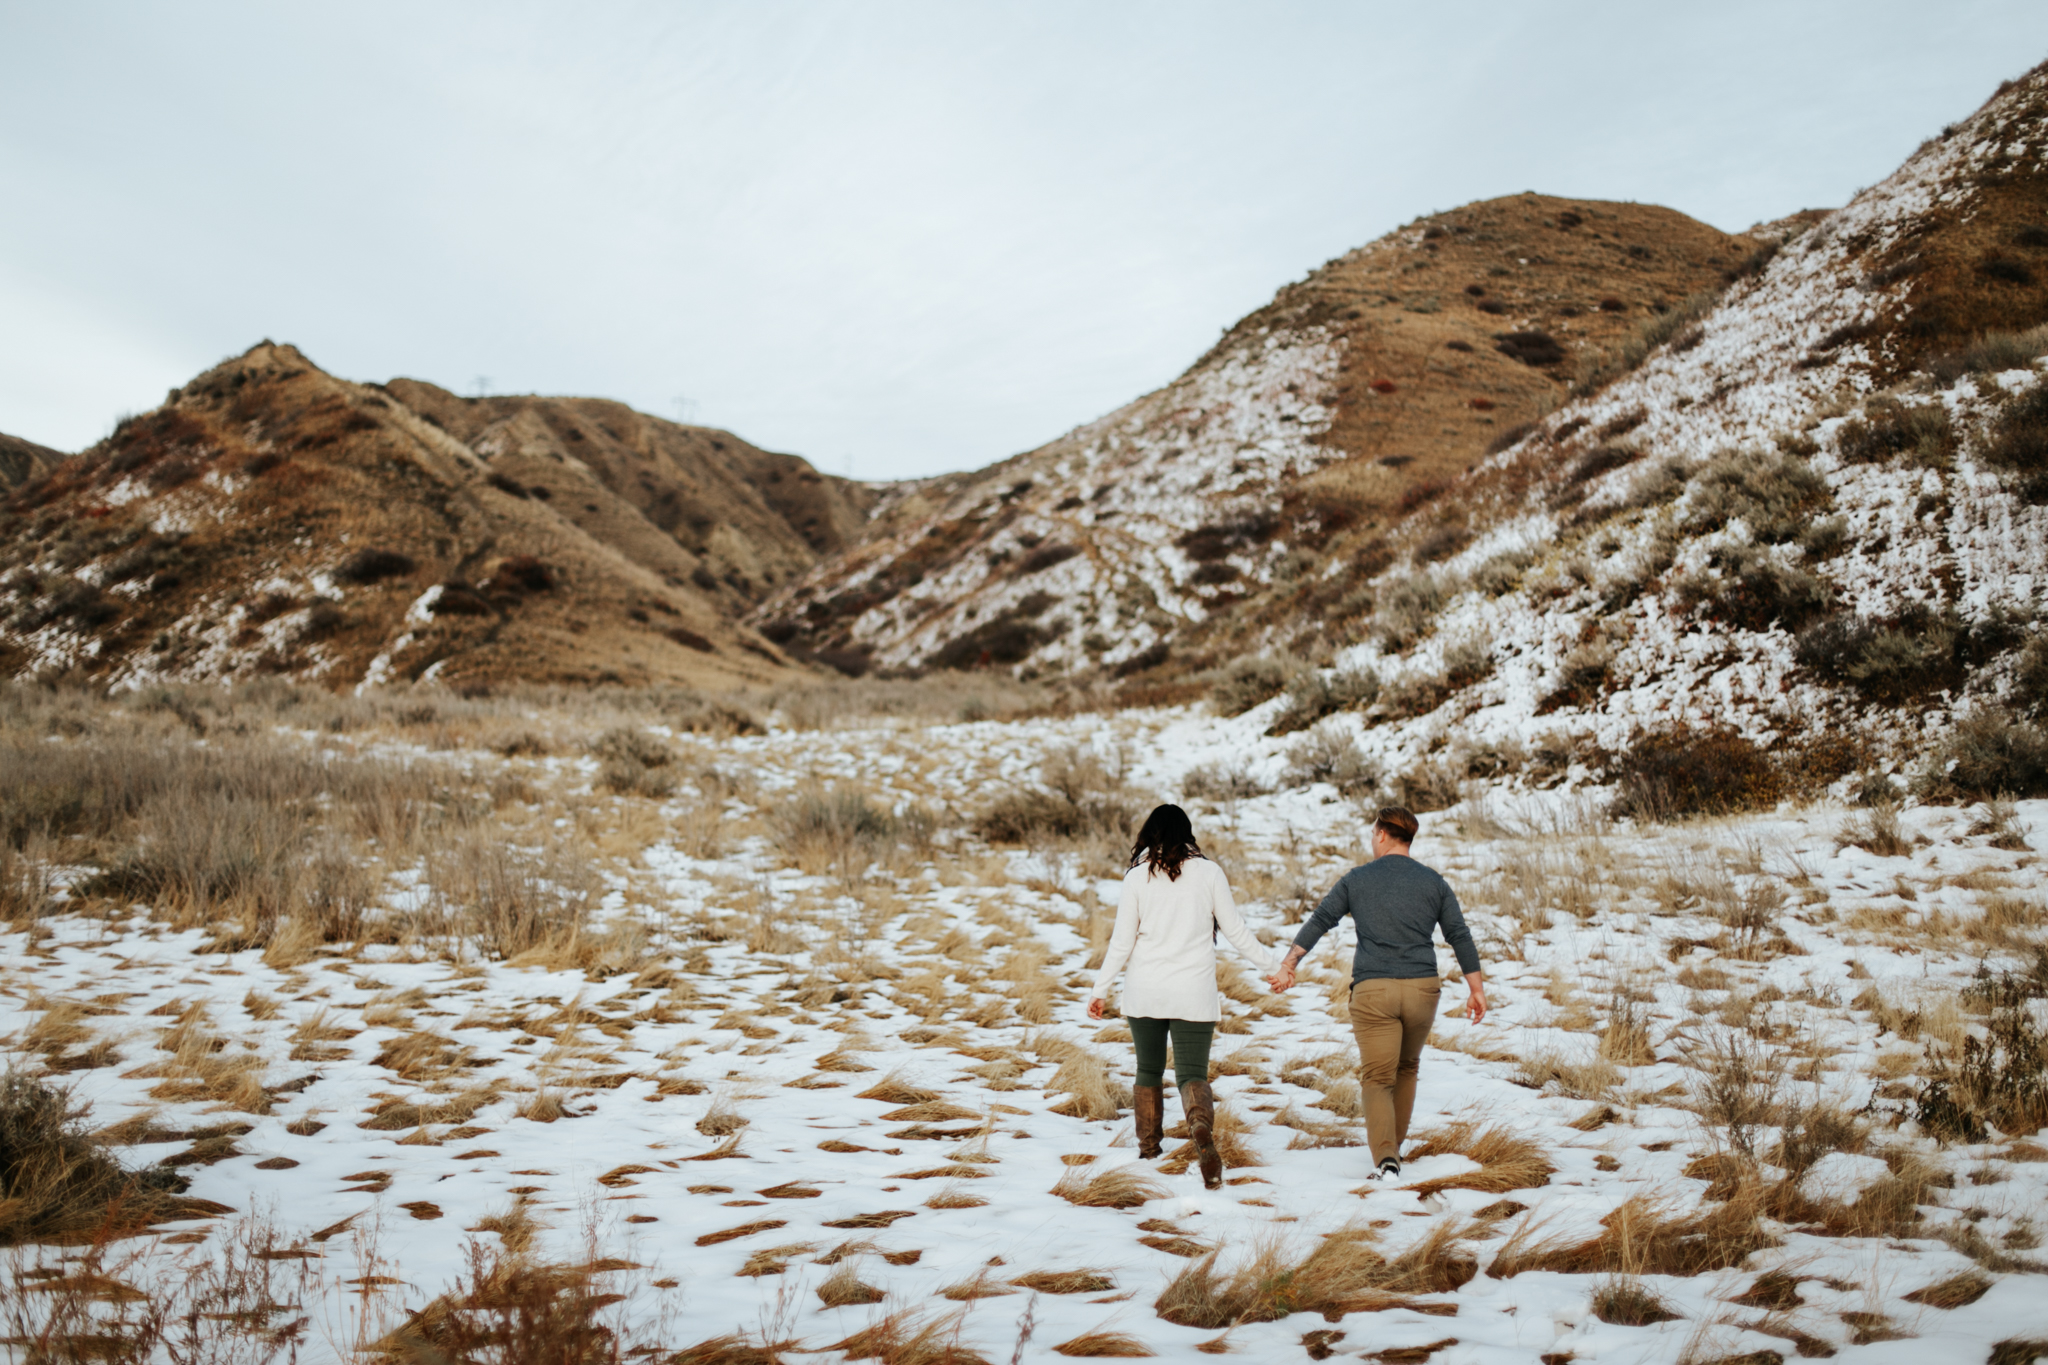 lethbridge-photographer-love-and-be-loved-photography-christy-bryan-fall-autumn-engagement-photo-image-picture-48.jpg